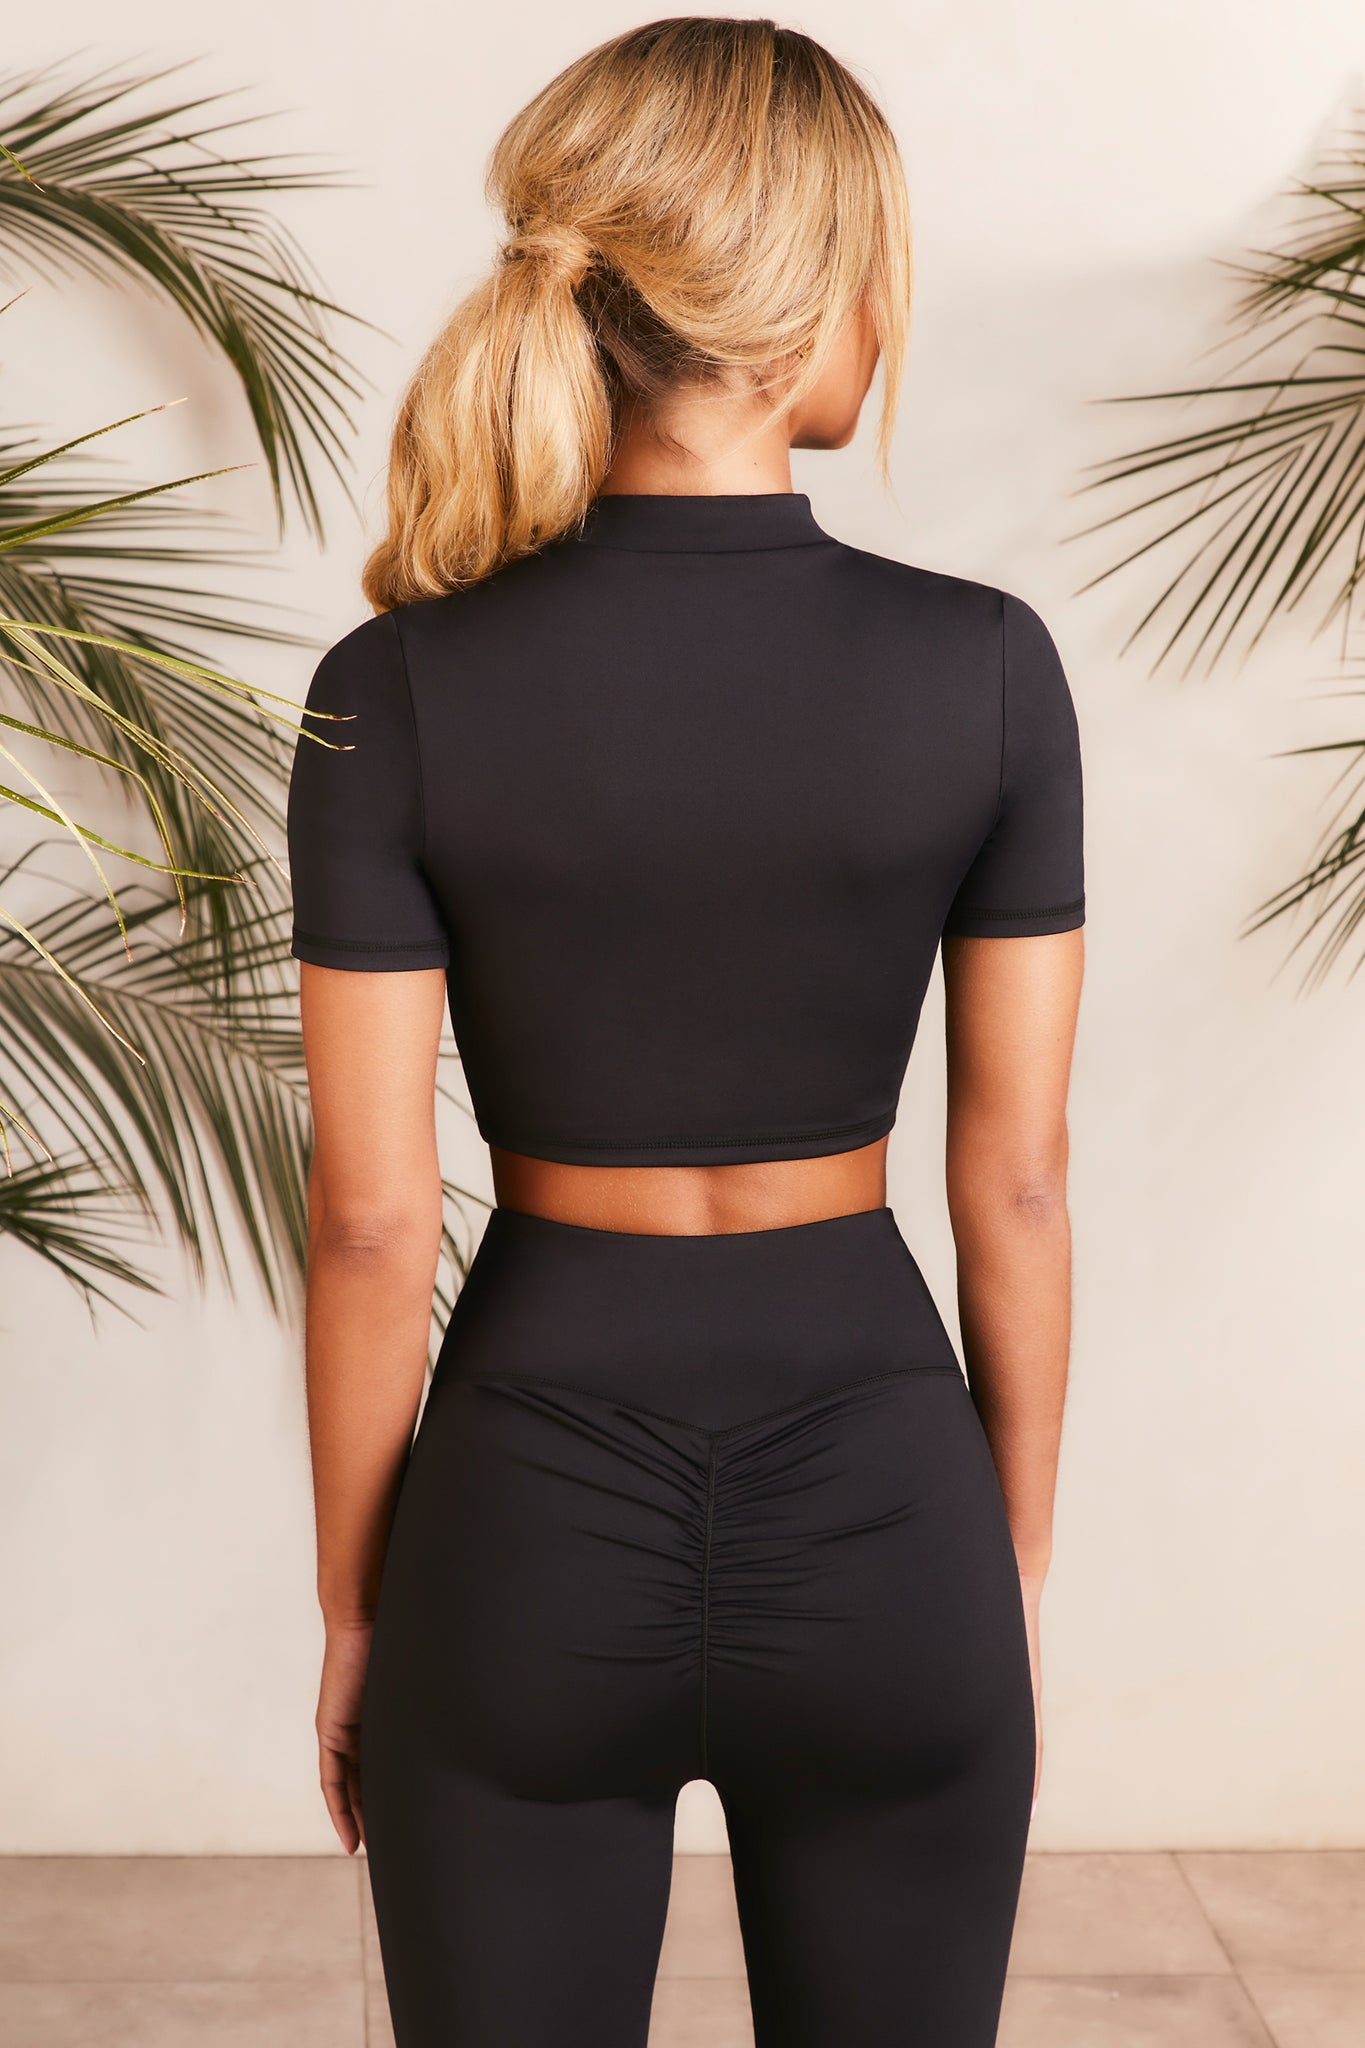 High neck crop top in black with short sleeves. Image 3 of 6.